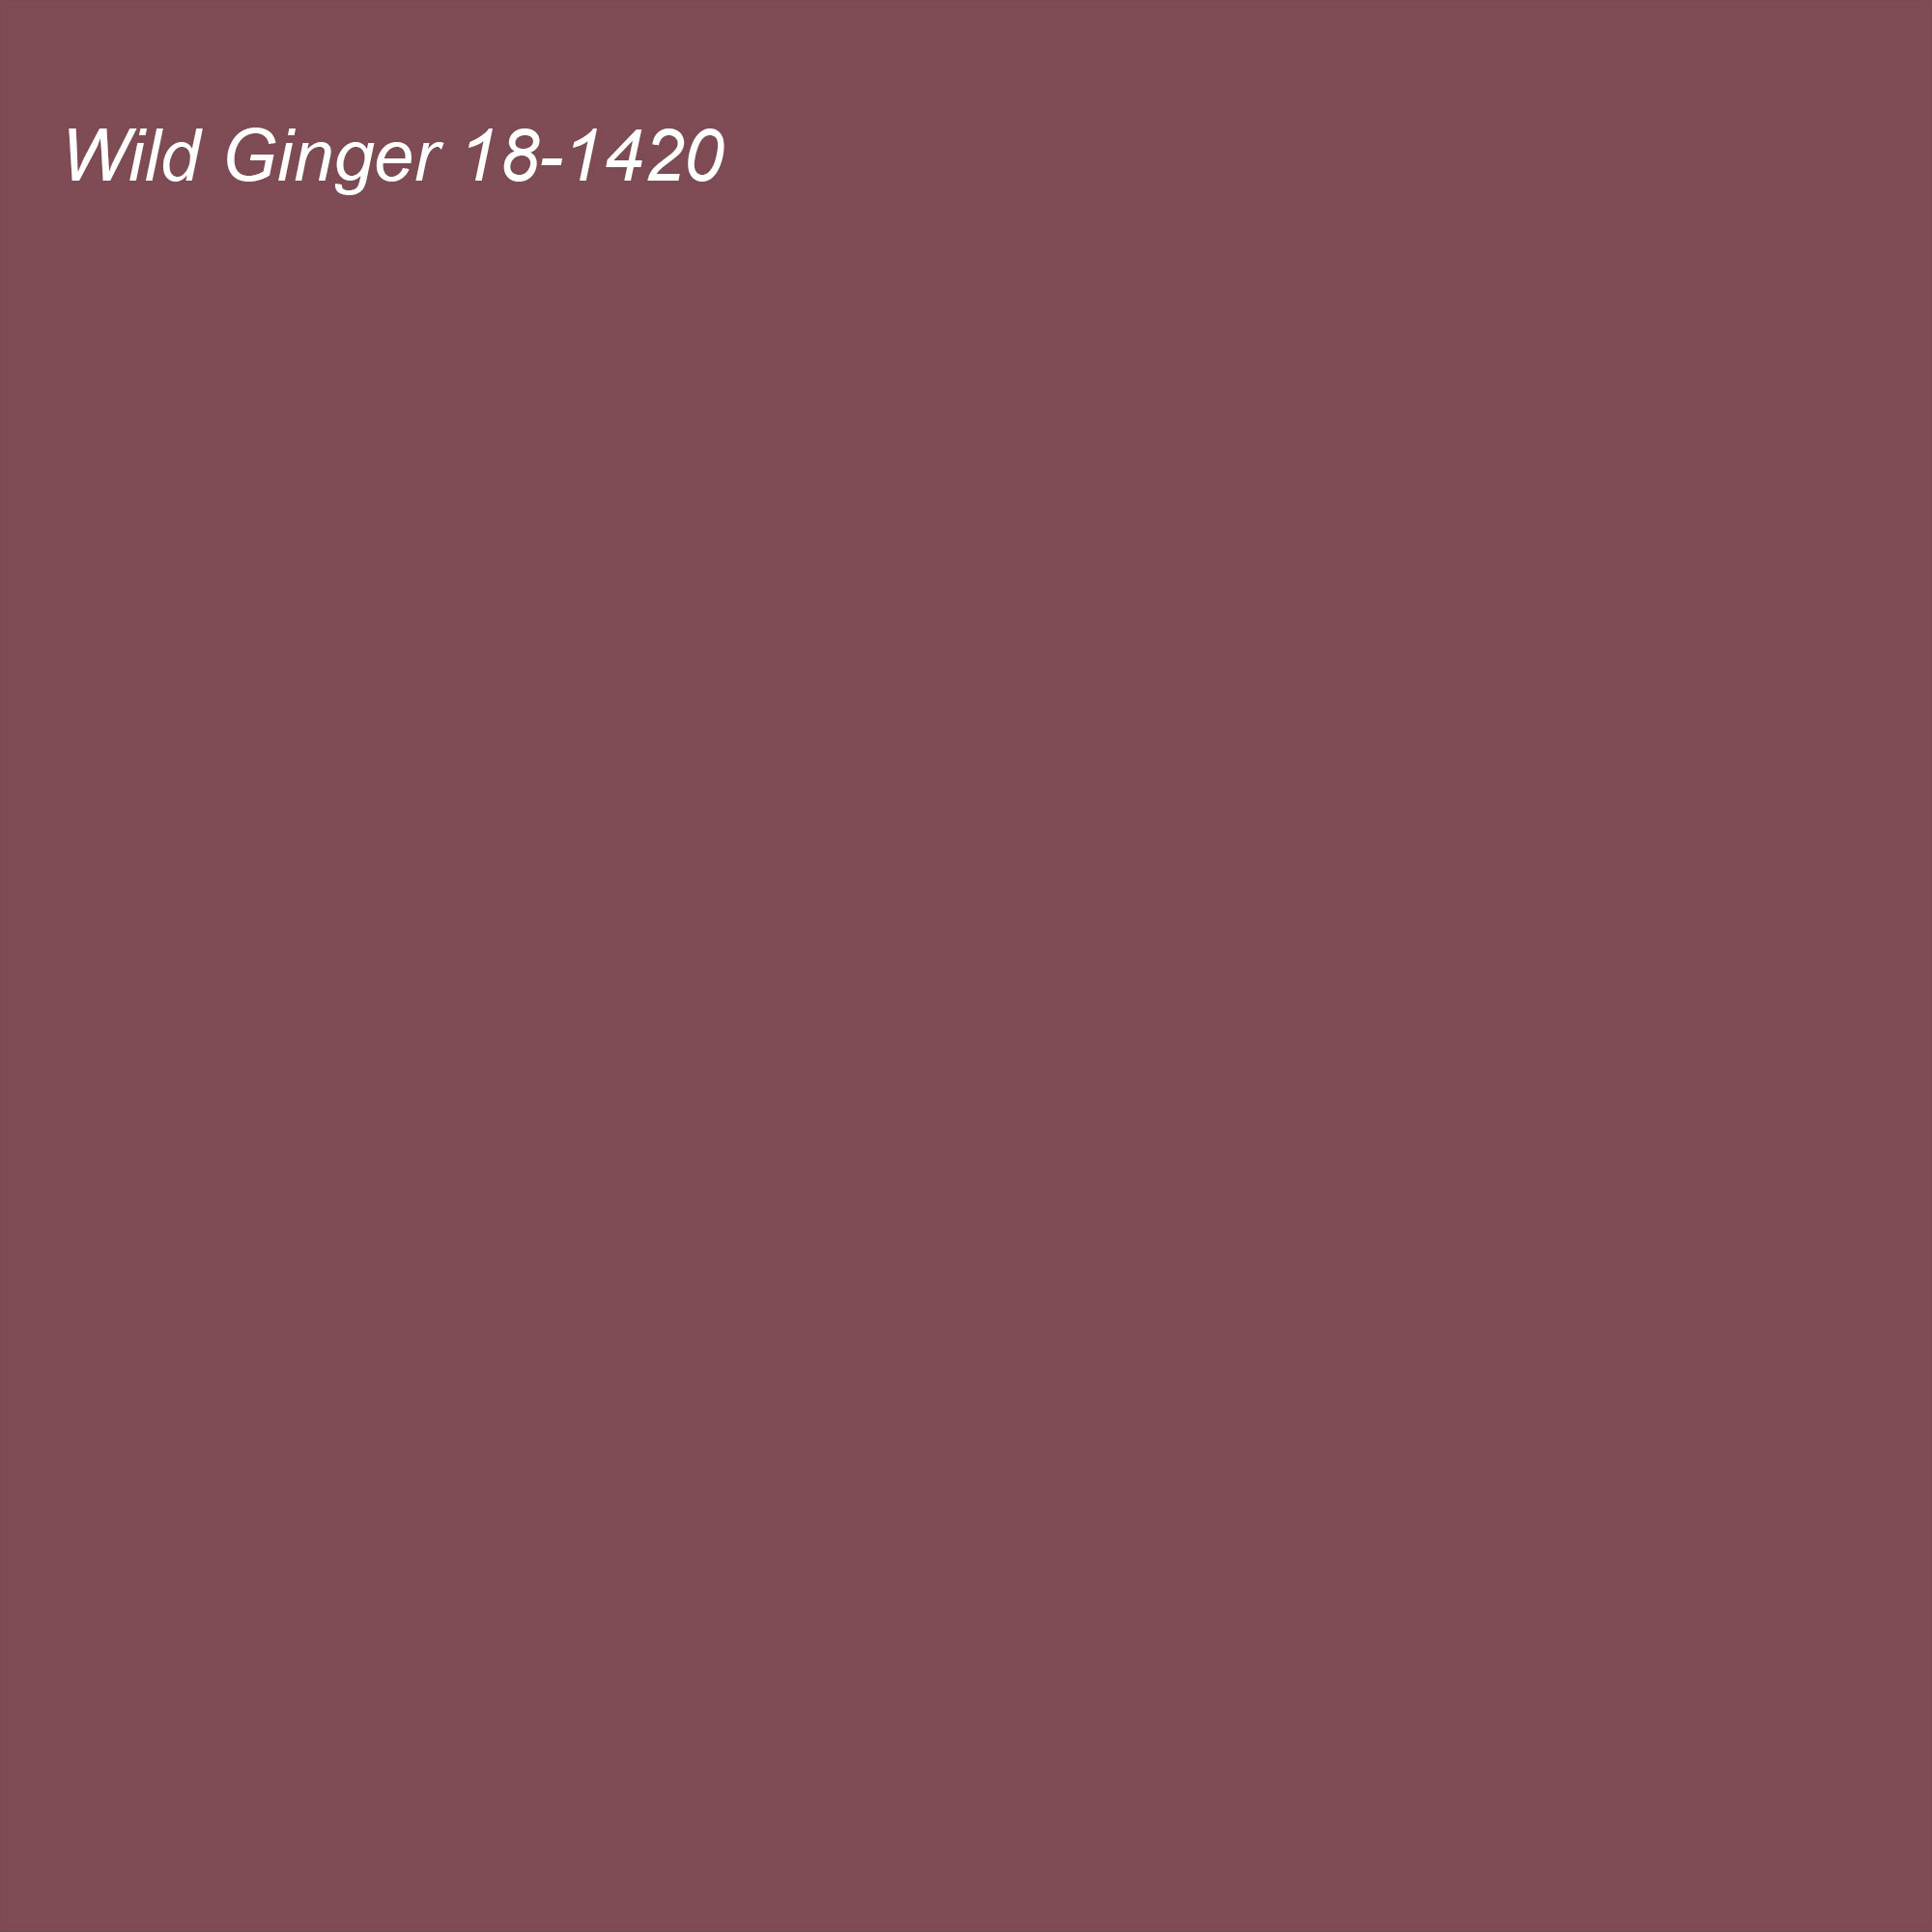 Pantone 2021 Color of the Year Suggested Accent Shade Wild Ginger 18-1420